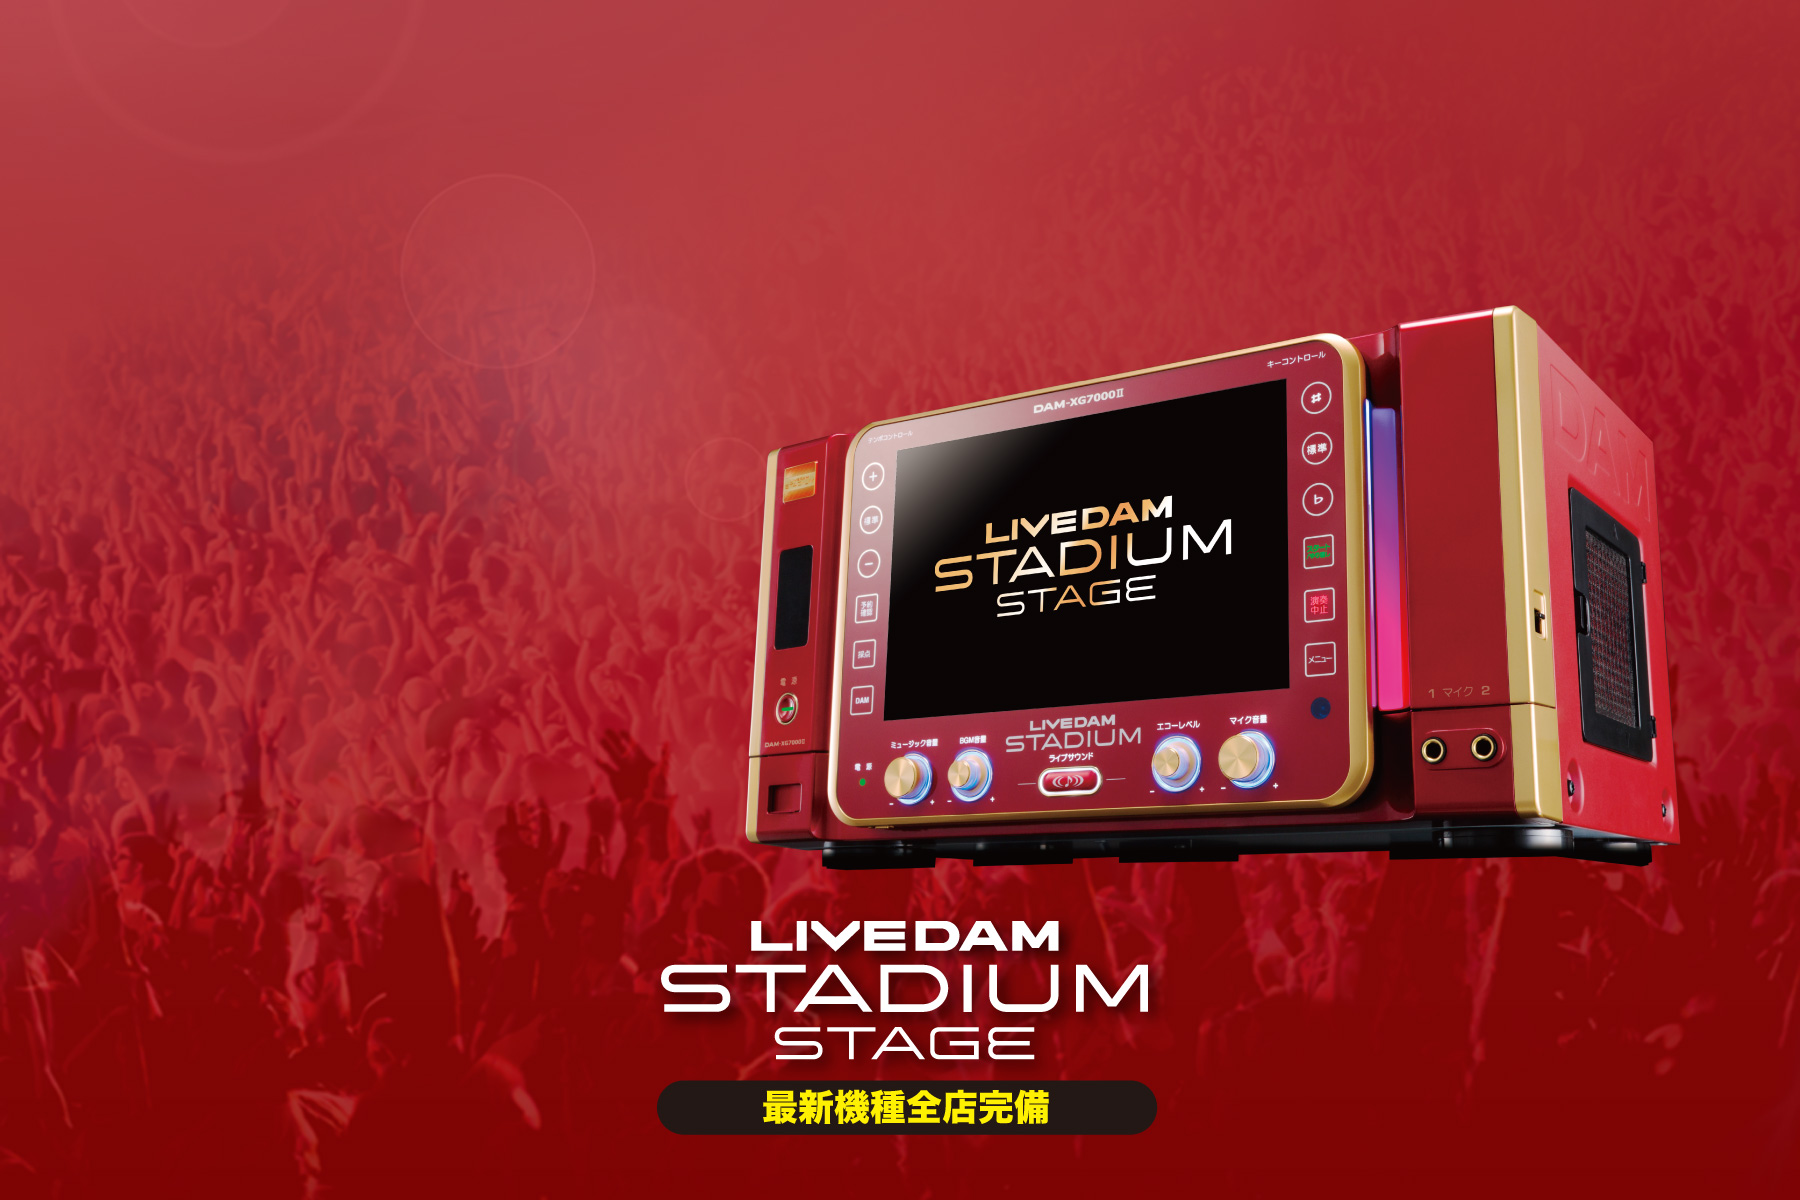 LIVEDAM STADIUM STAGE